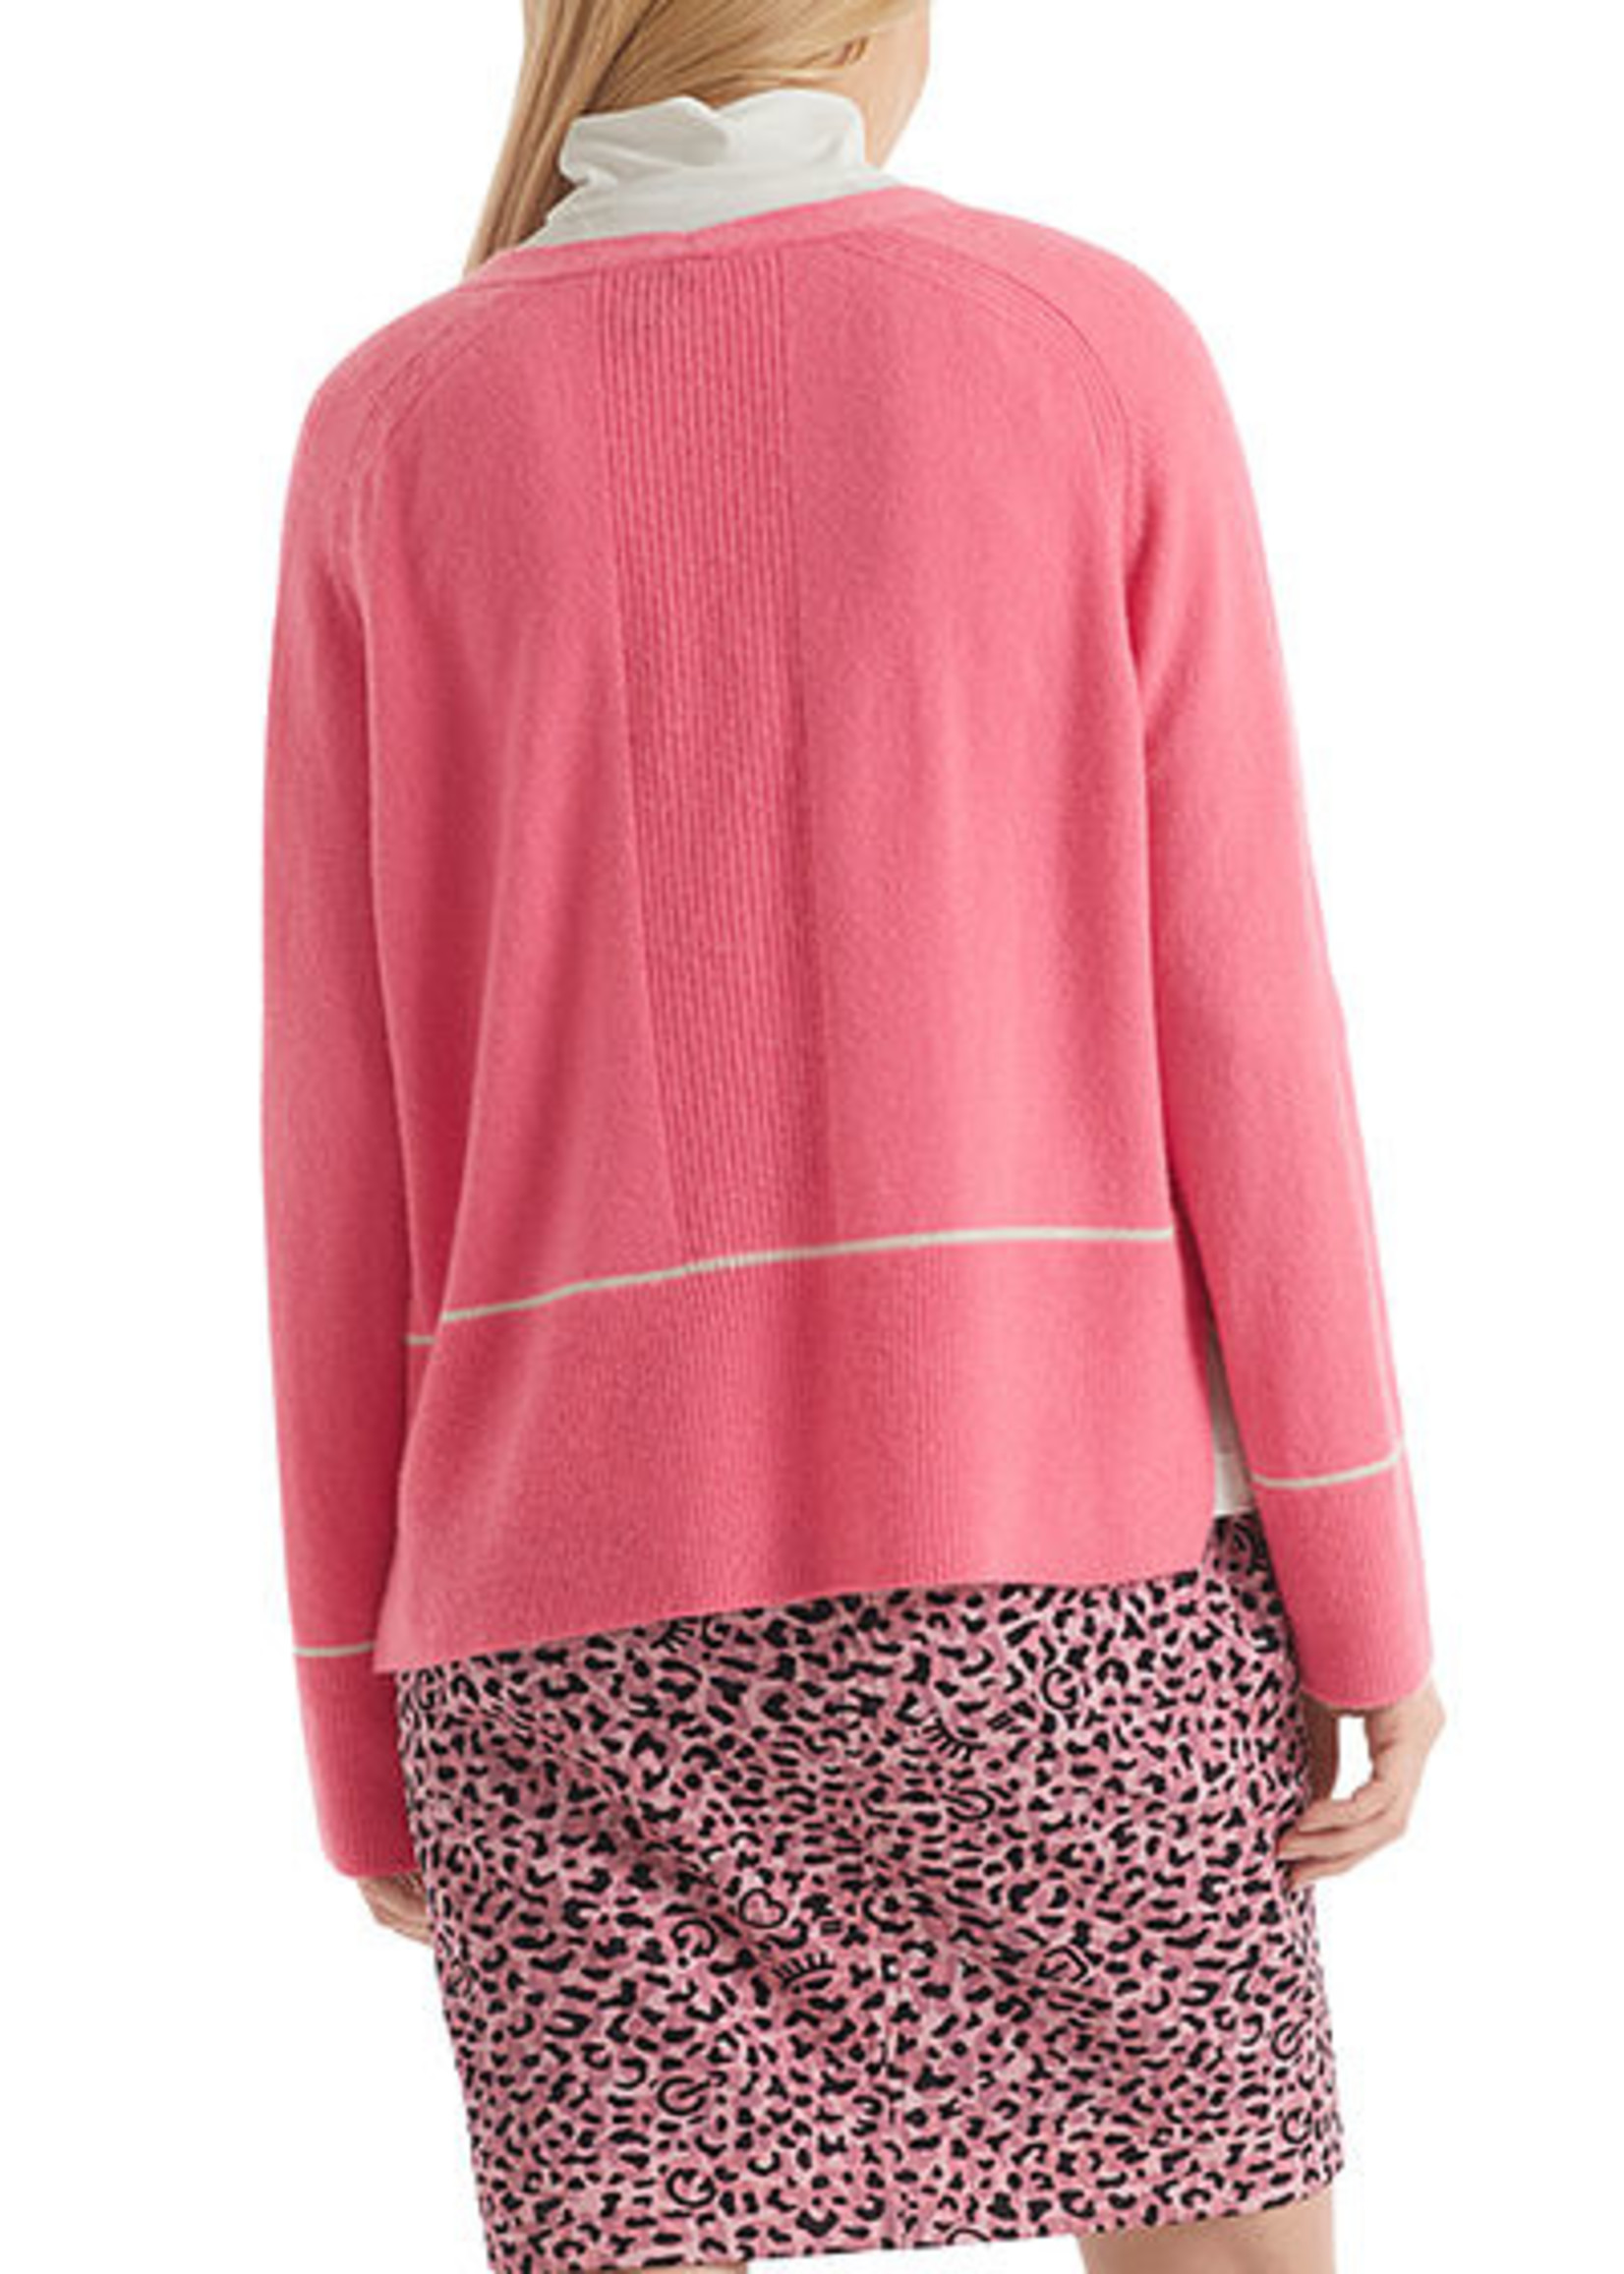 Marccain Sports Sweater RS 41.07 M52 sugar coral